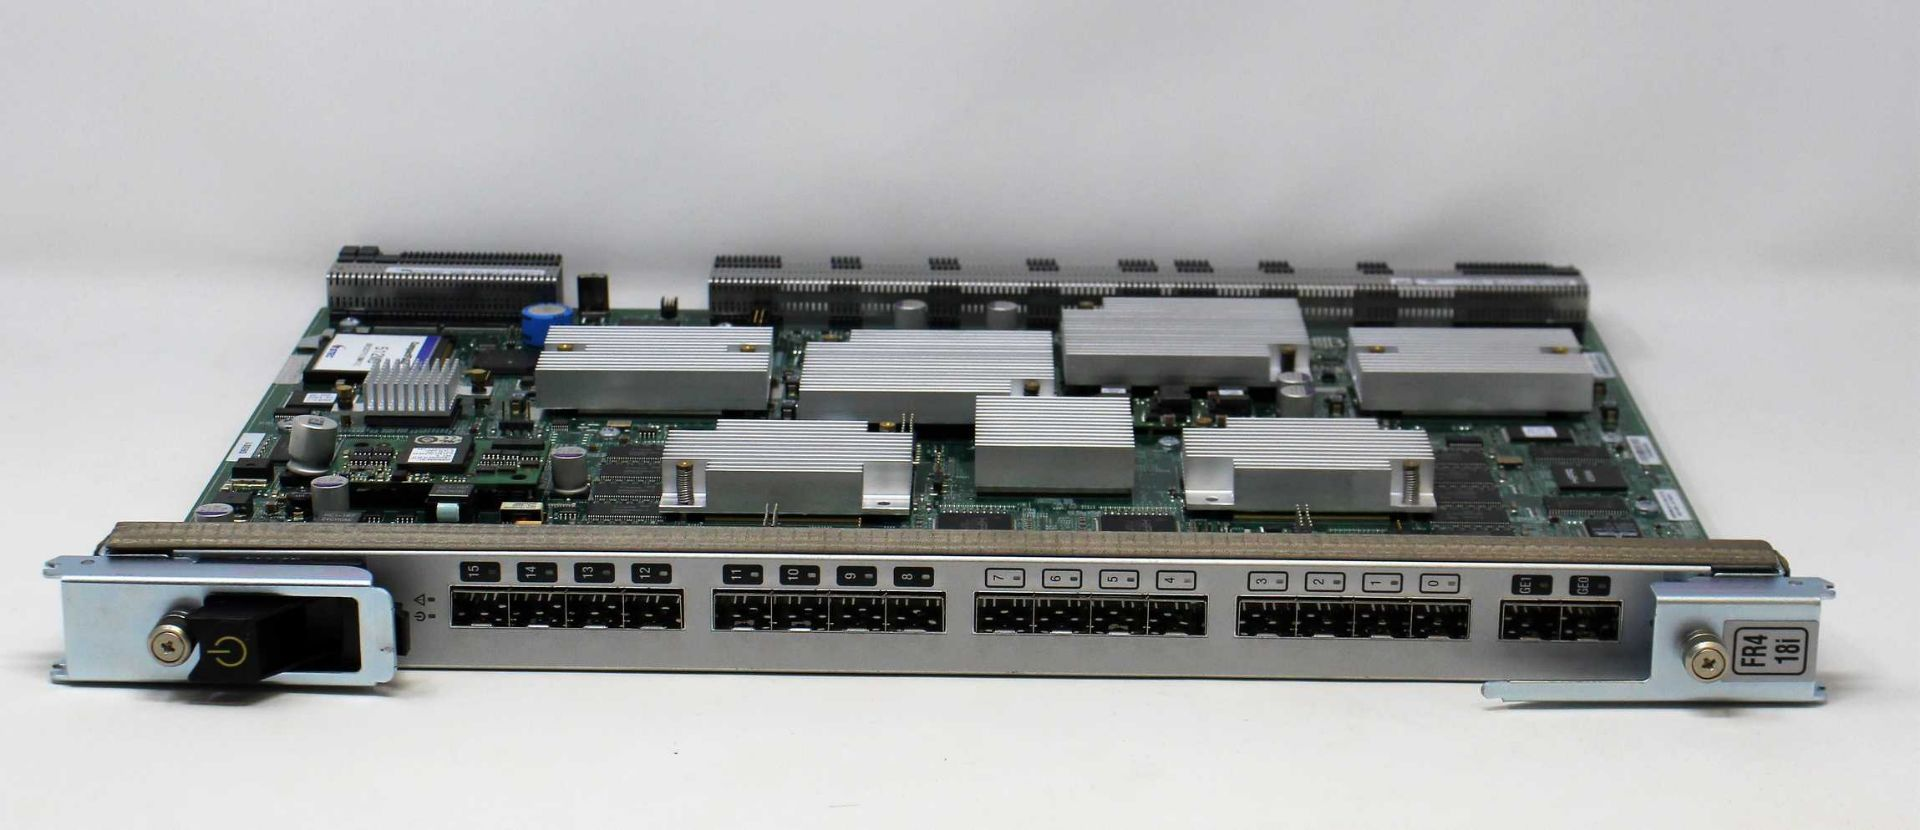 A pre-owned Brocade FR4 18i 18-Port 4Gb Fibre Channel Switch Blade (60-0000659-15) (Box and